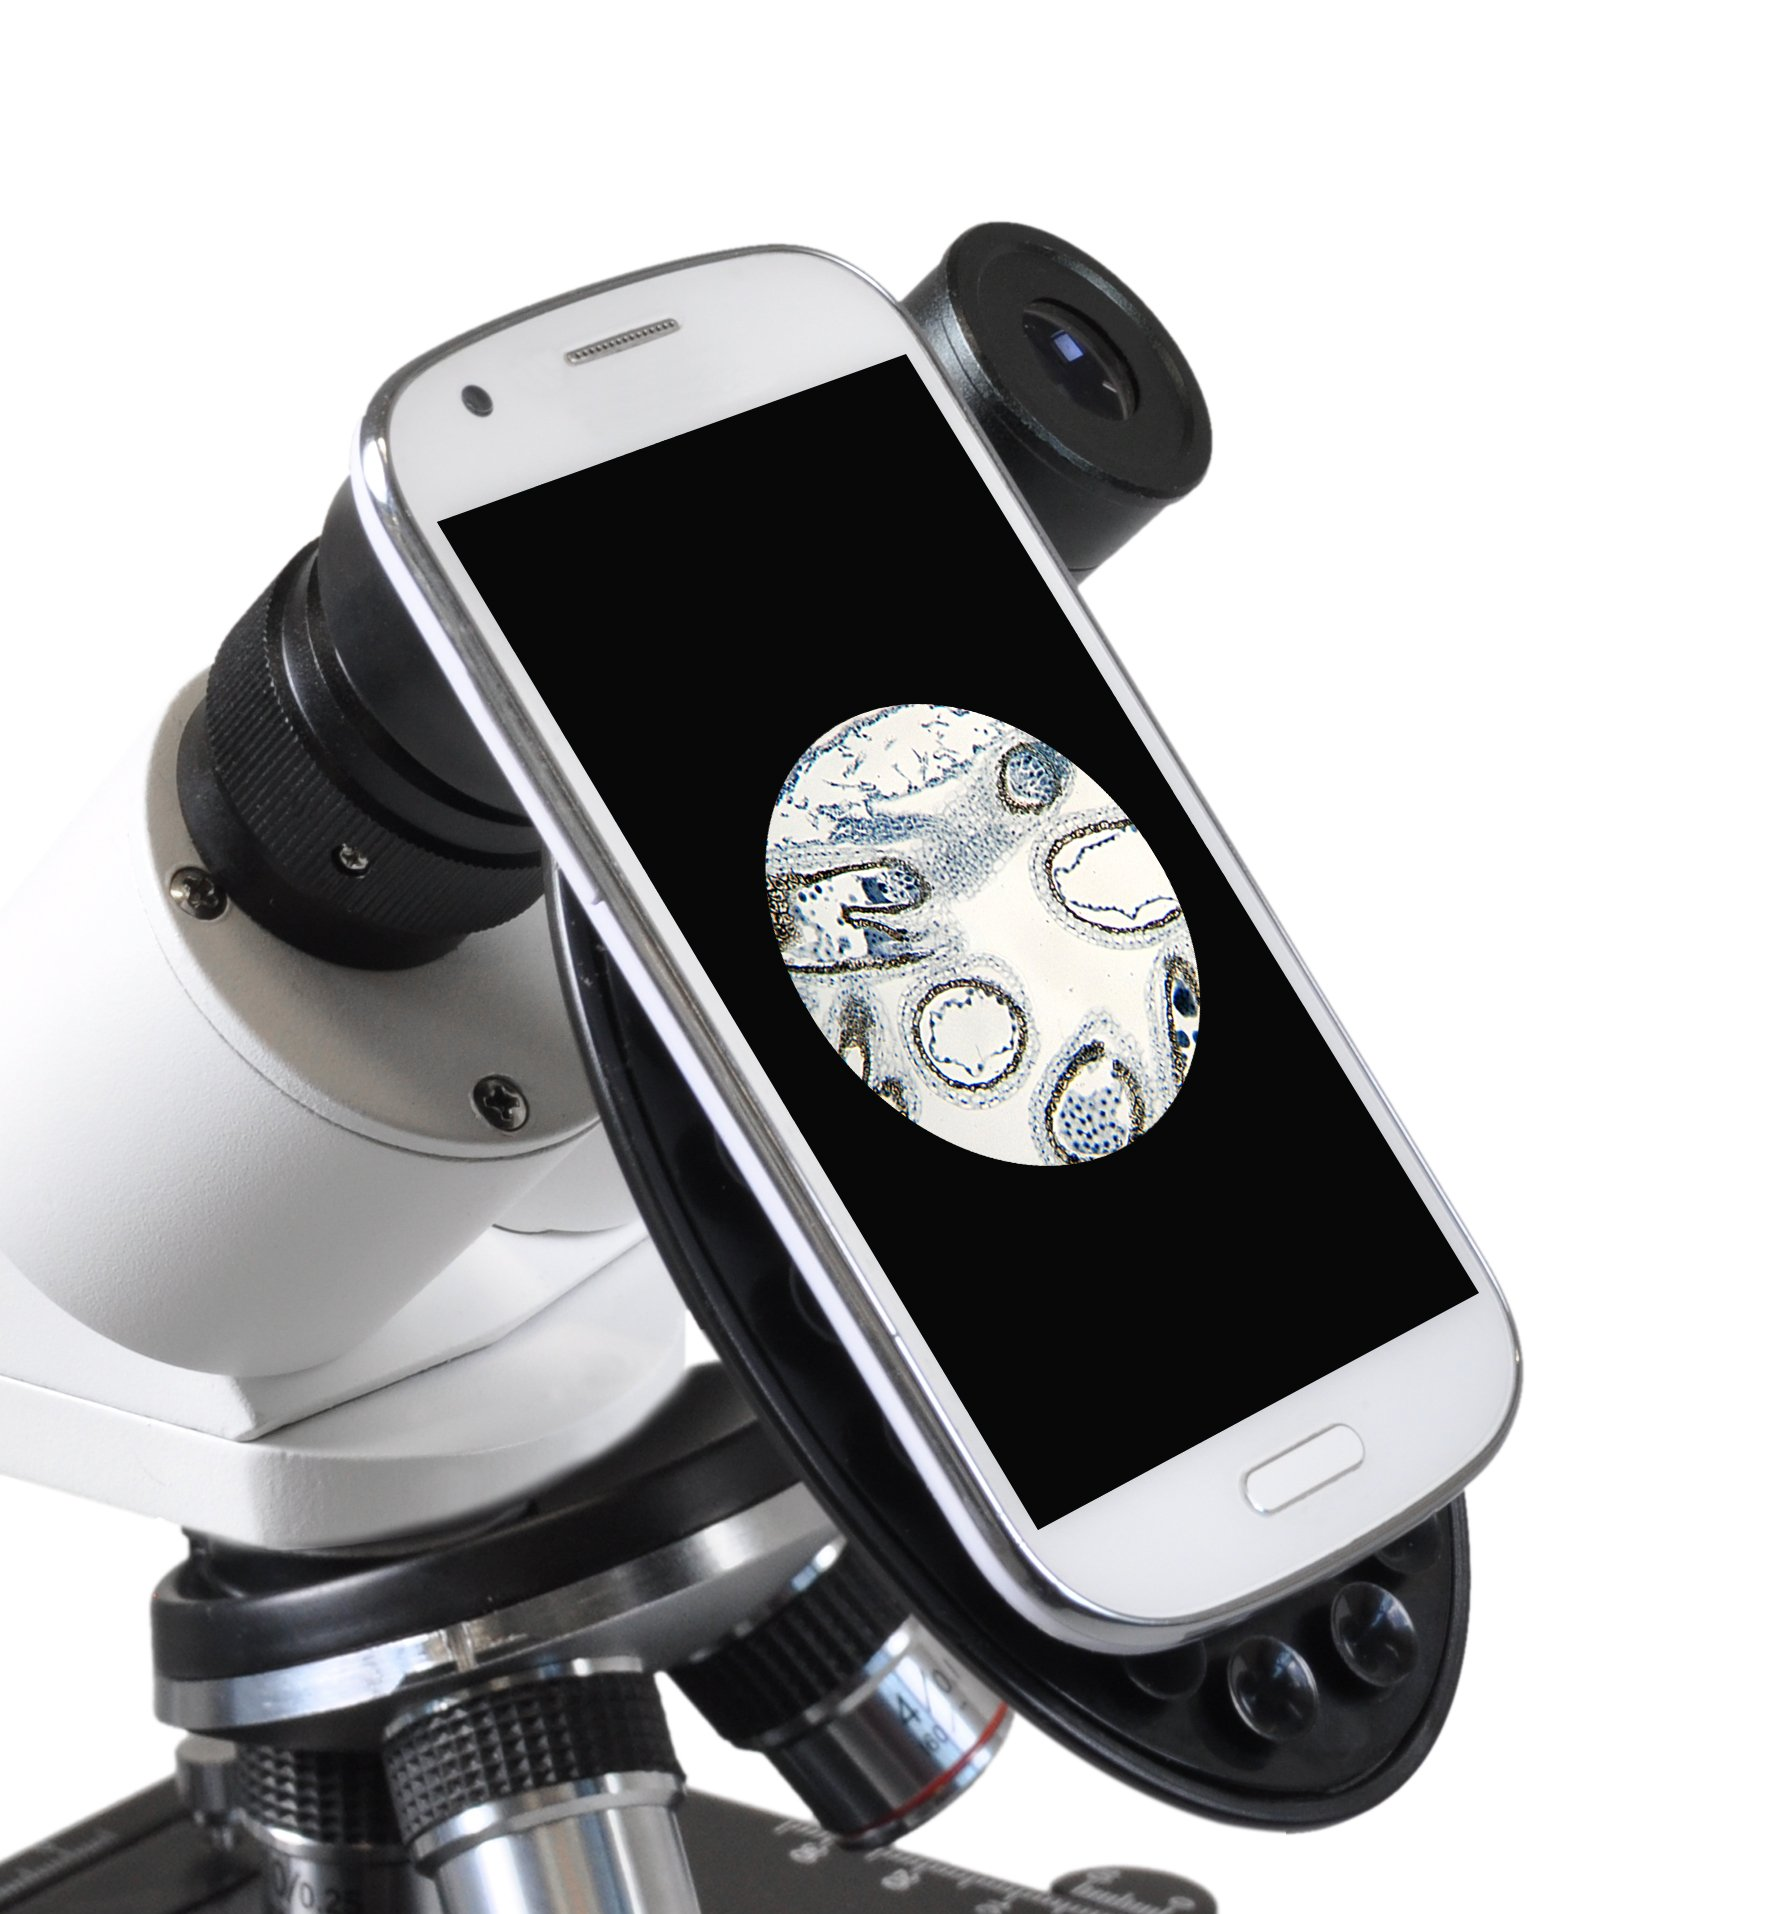 Bresser Microscope Erudit Basic Bino 40-400x Binocular with Smartphone Holder